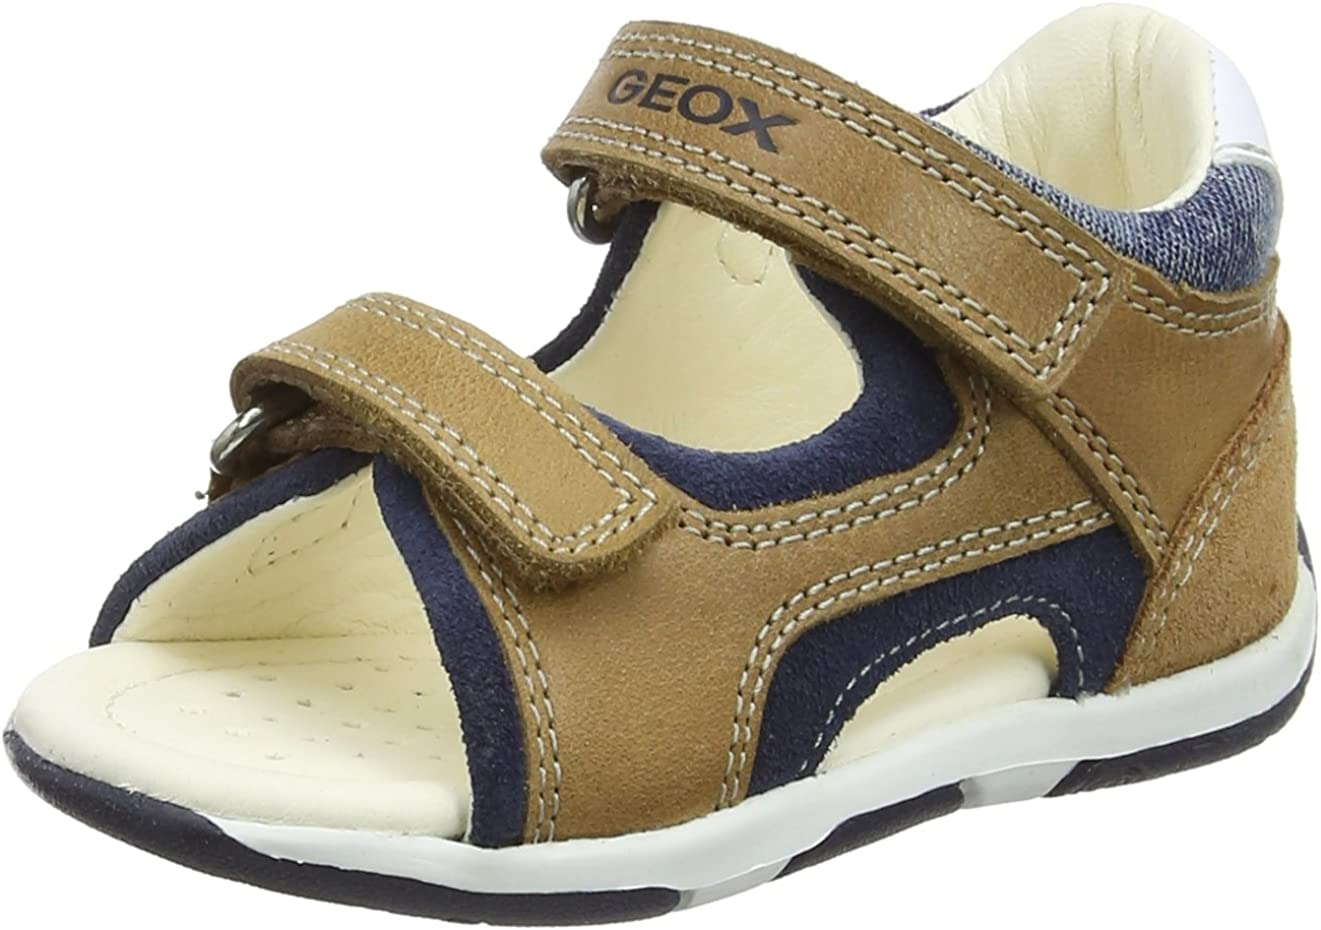 Geox Unisex-Child SEAL limited product TAPUZ Sandal Attention brand BOY 6